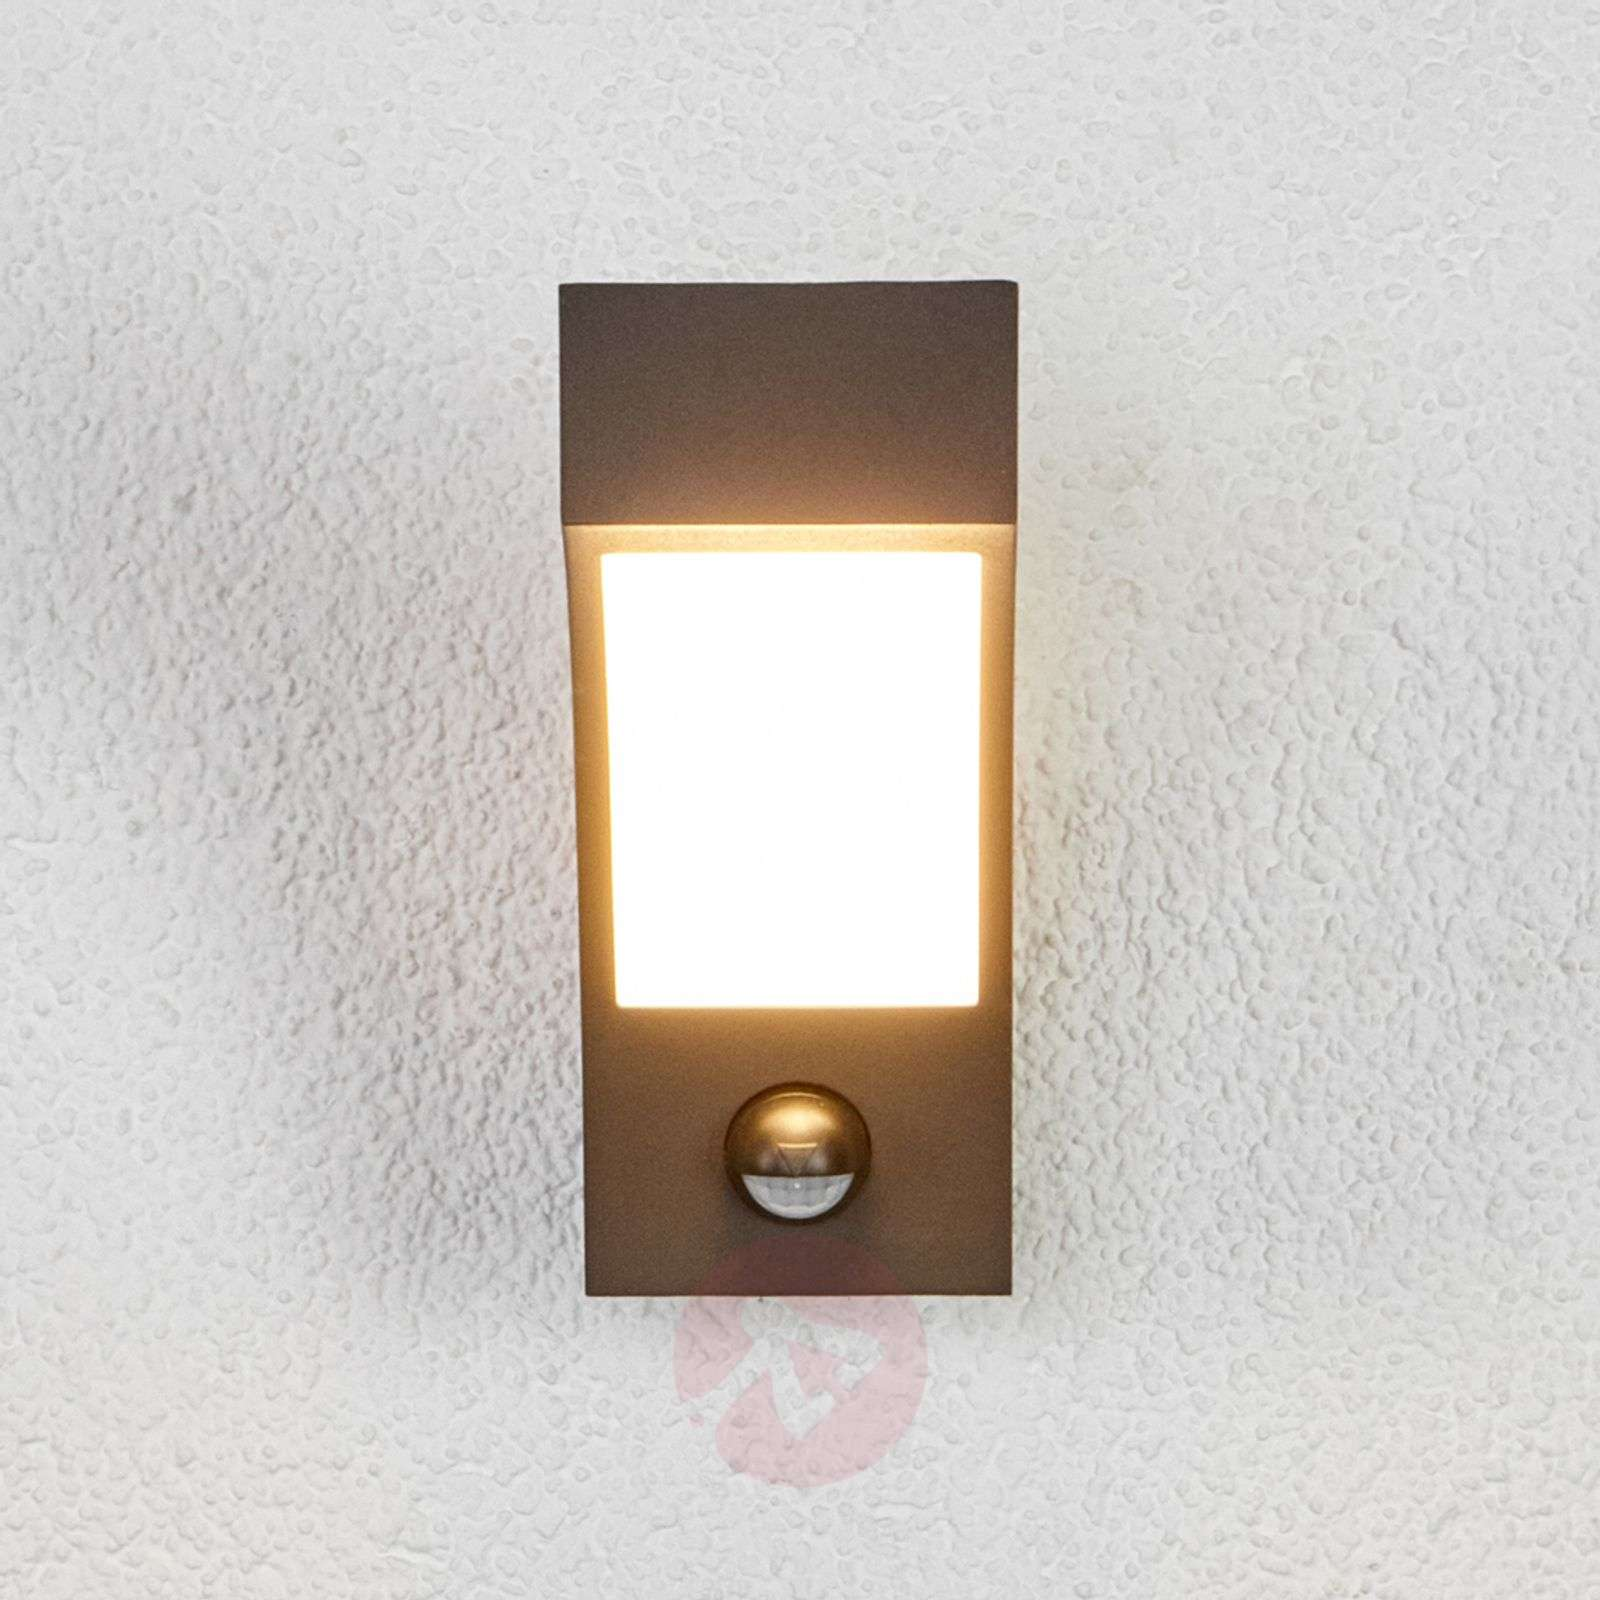 Lennik LED Exterior Wall Lamp with Motion Detector Lights.co.uk